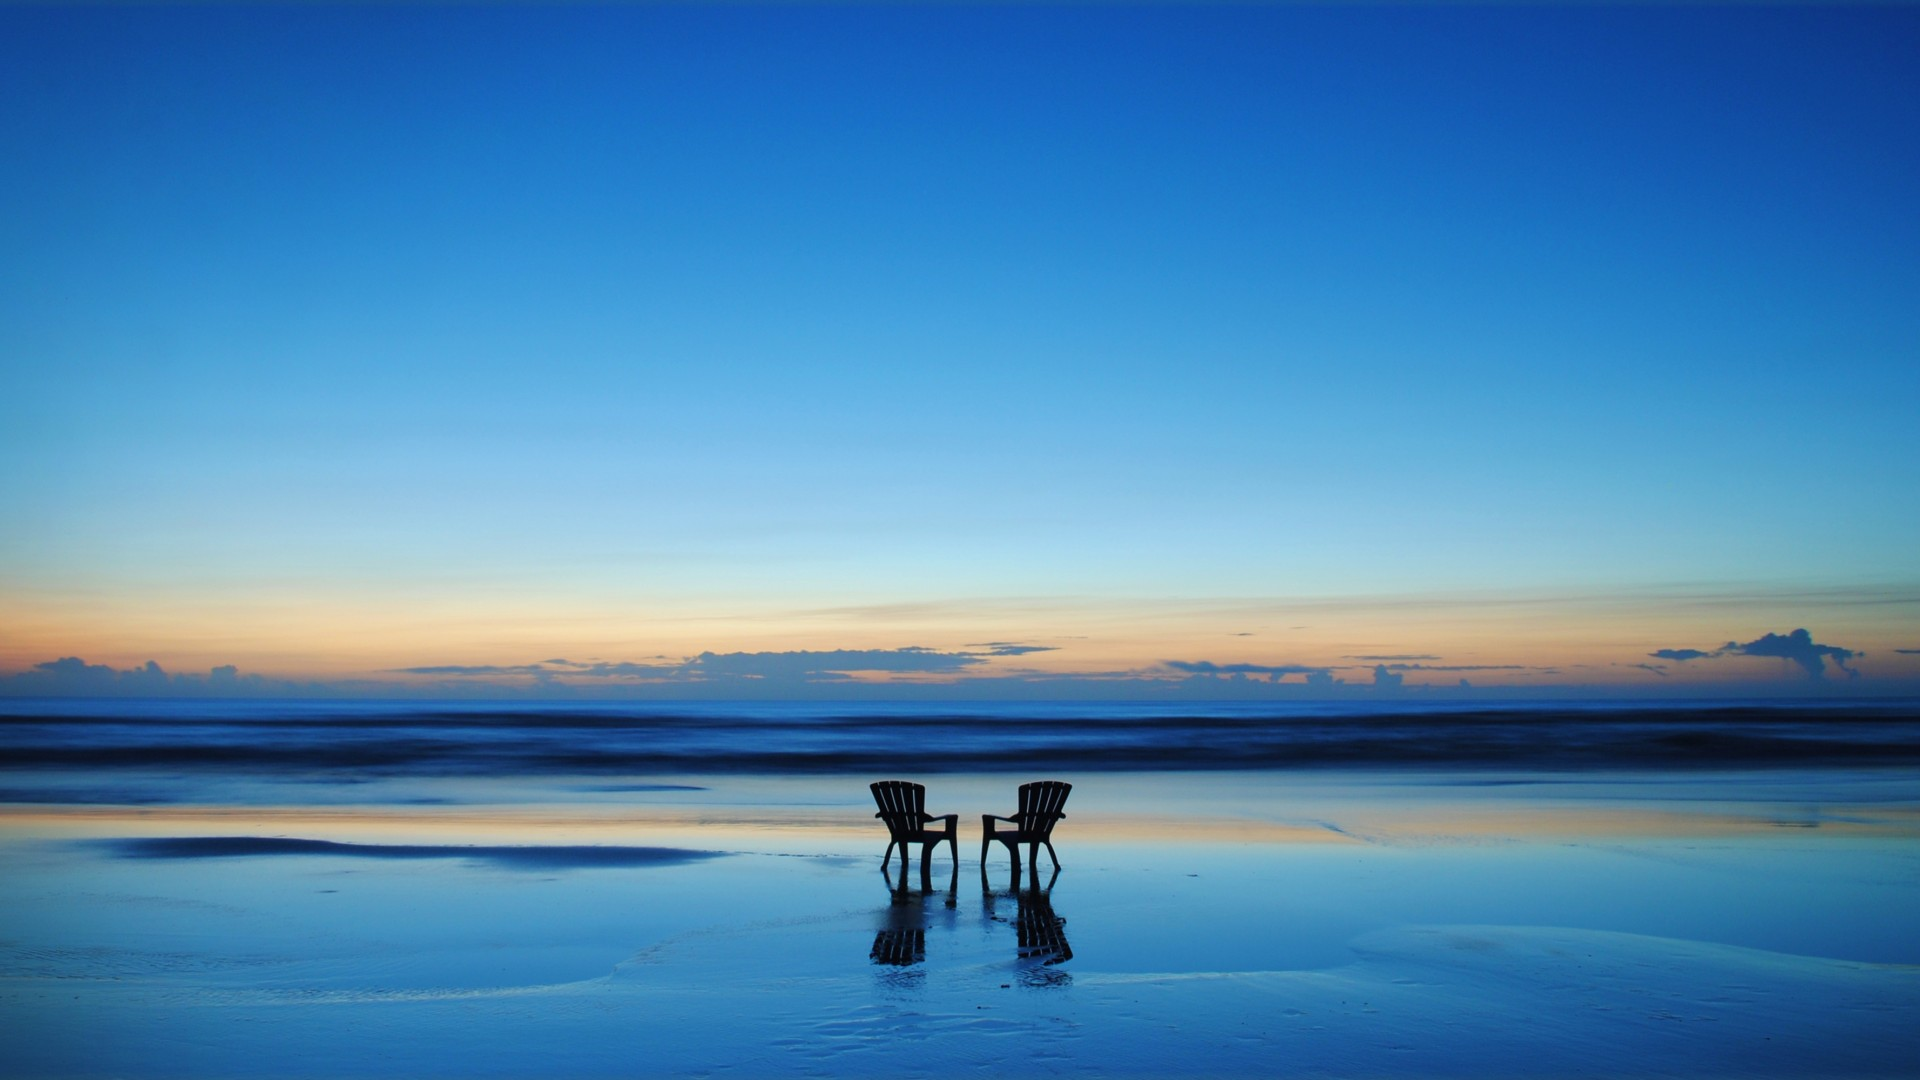 Amazing-Two-Chairs-On-The-Beach-55-For-Your-Beach-Chairs-Kmart-Australia-with-Two-Chairs-On-The-Beach.jpg